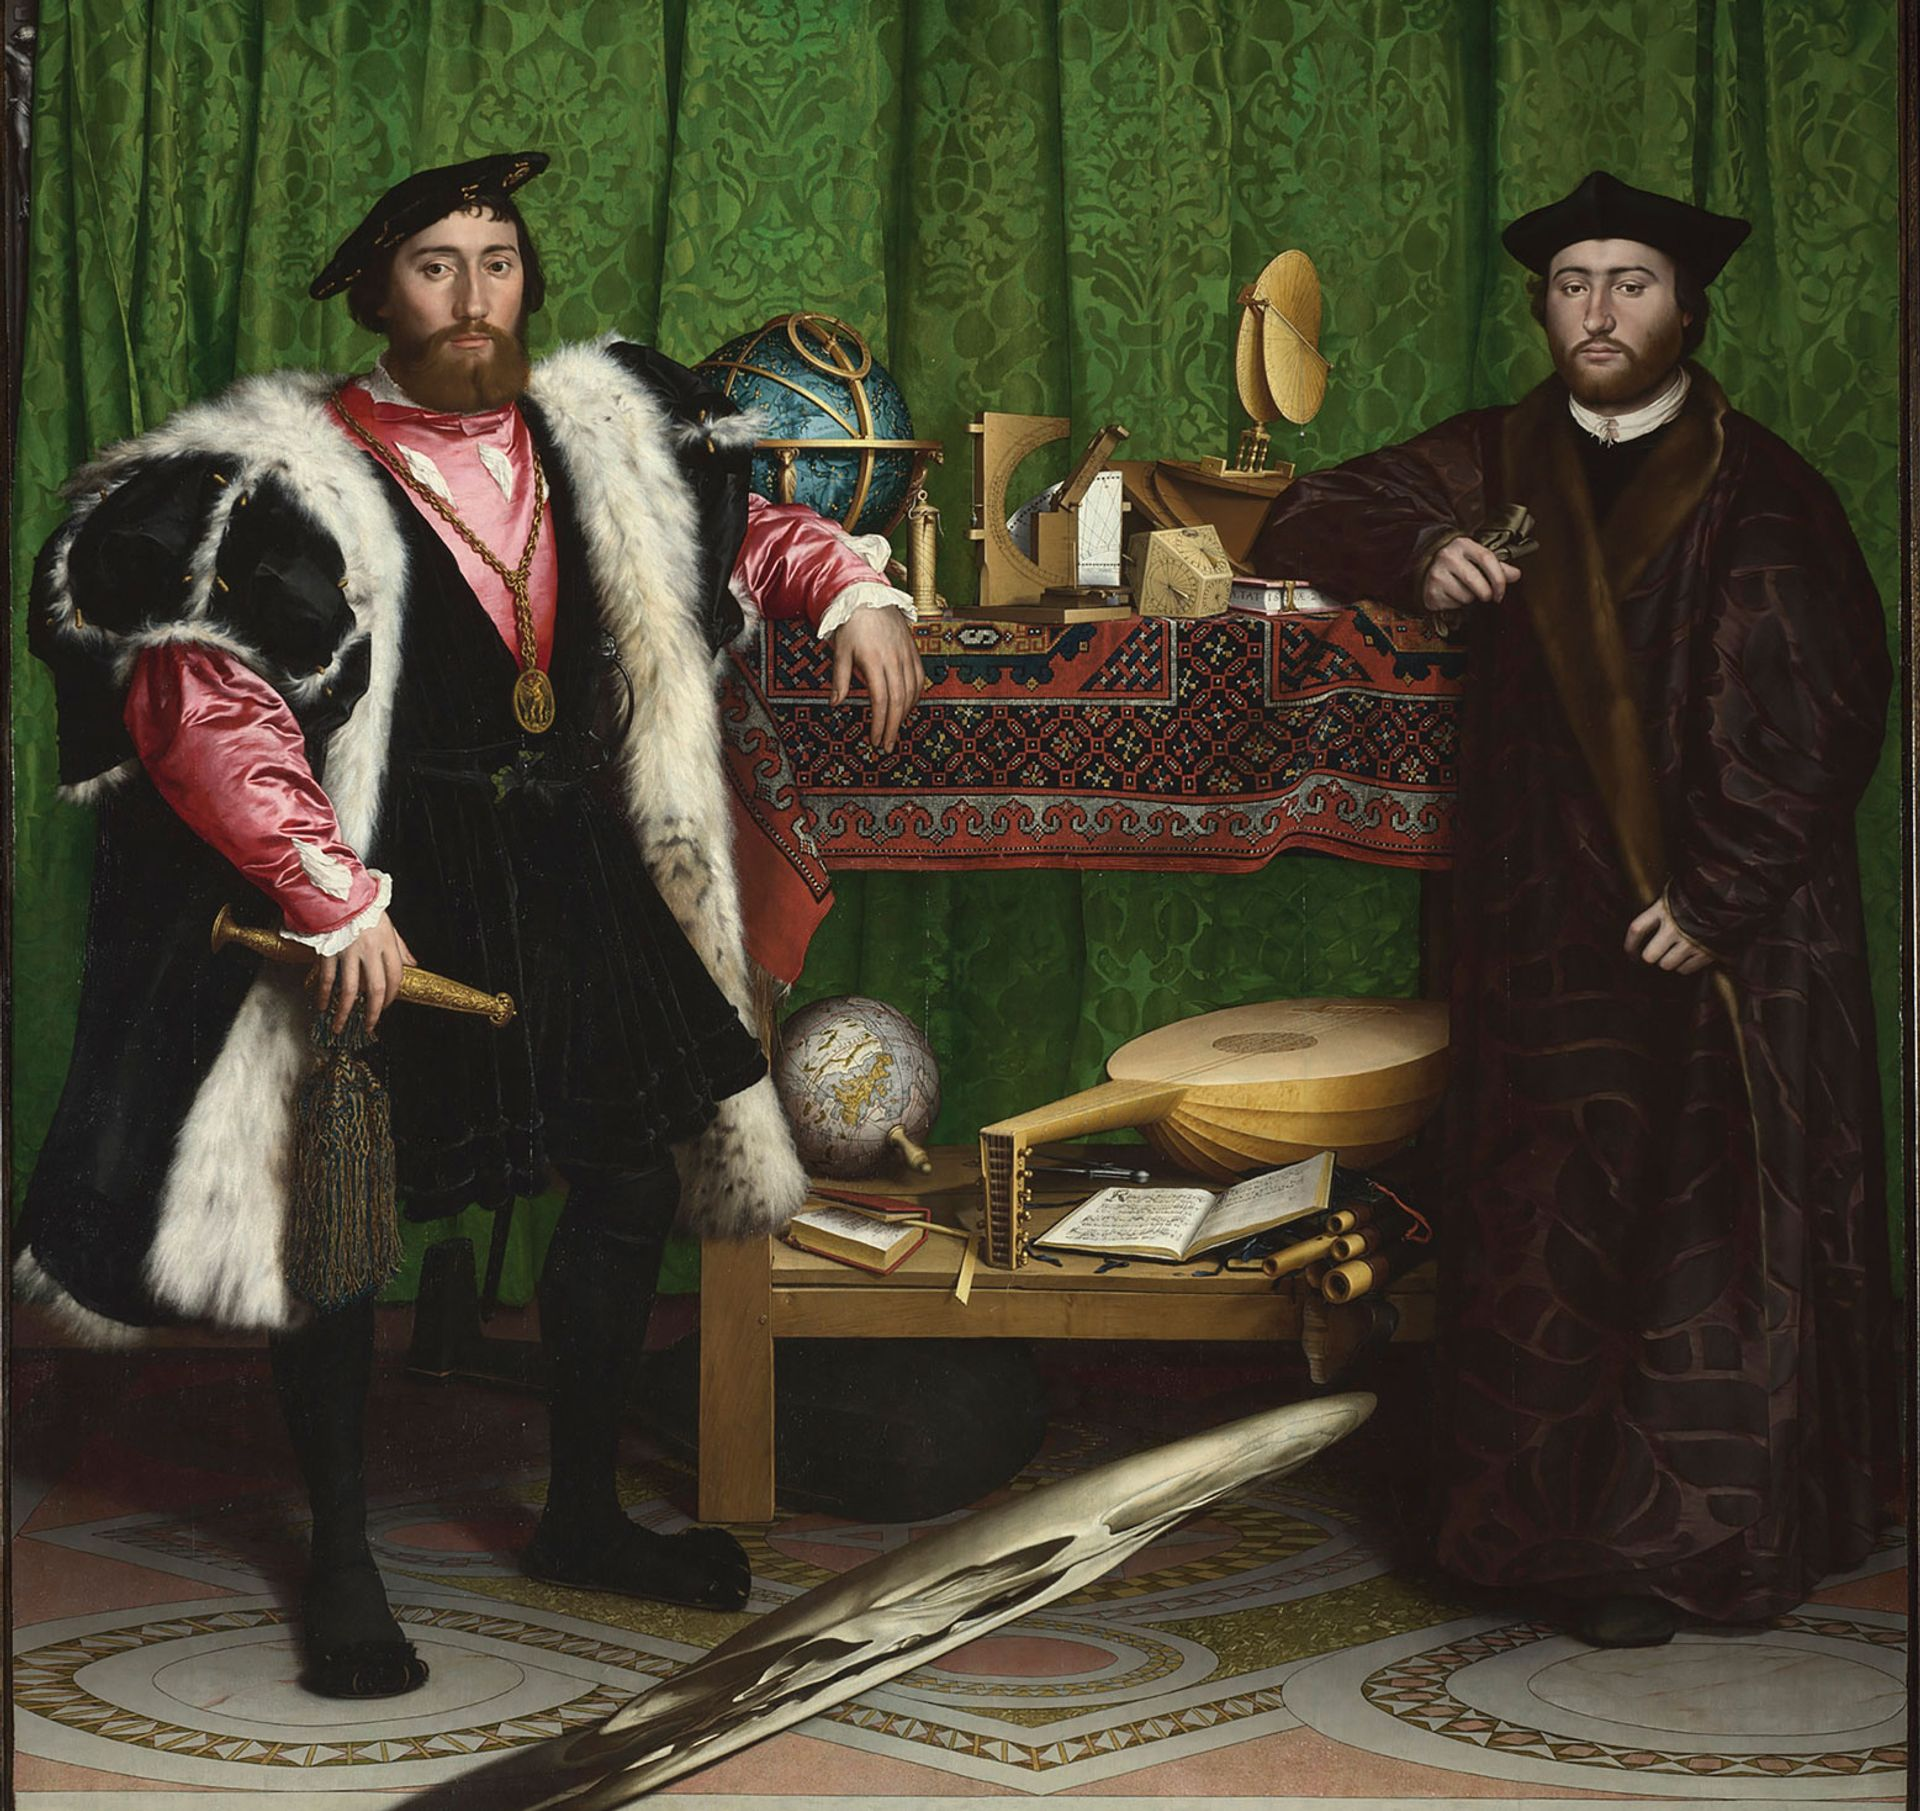 Hans Holbein the Younger, The Ambassadors (1533) was warped by water damage National Gallery, London